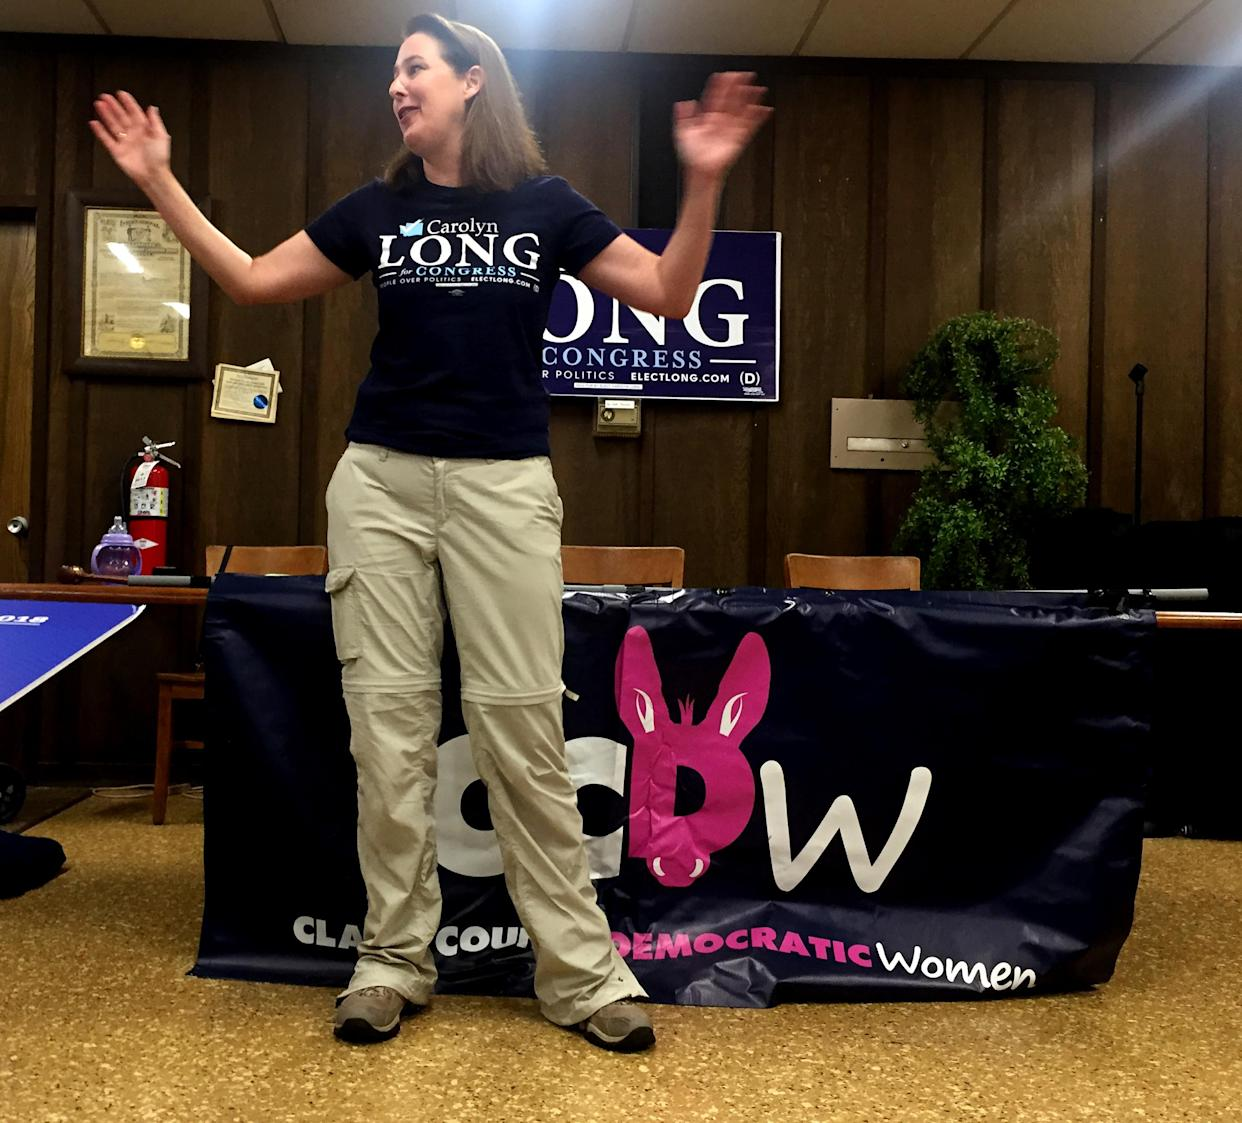 Democratic congressional candidate Carolyn Long speaks to supporters at the Labor Center in Vancouver, Wash., on Saturday. (Photo: David Knowles/Yahoo News)